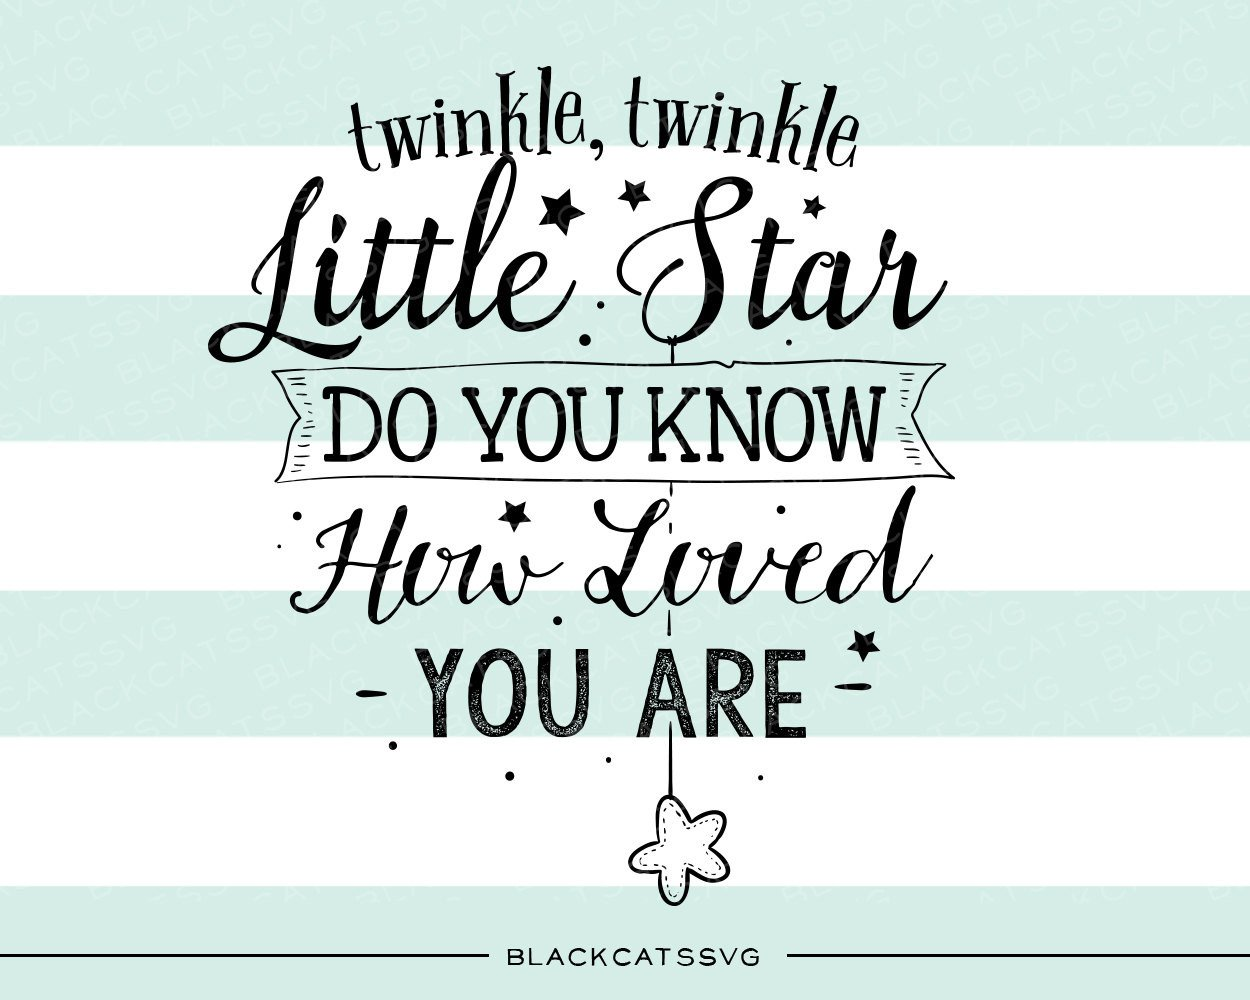 Twinkle twinkle little star SVG file Cutting File Clipart in Svg, Eps, Dxf,  PlusPng.com  - Twinkle Twinkle Little Star PNG